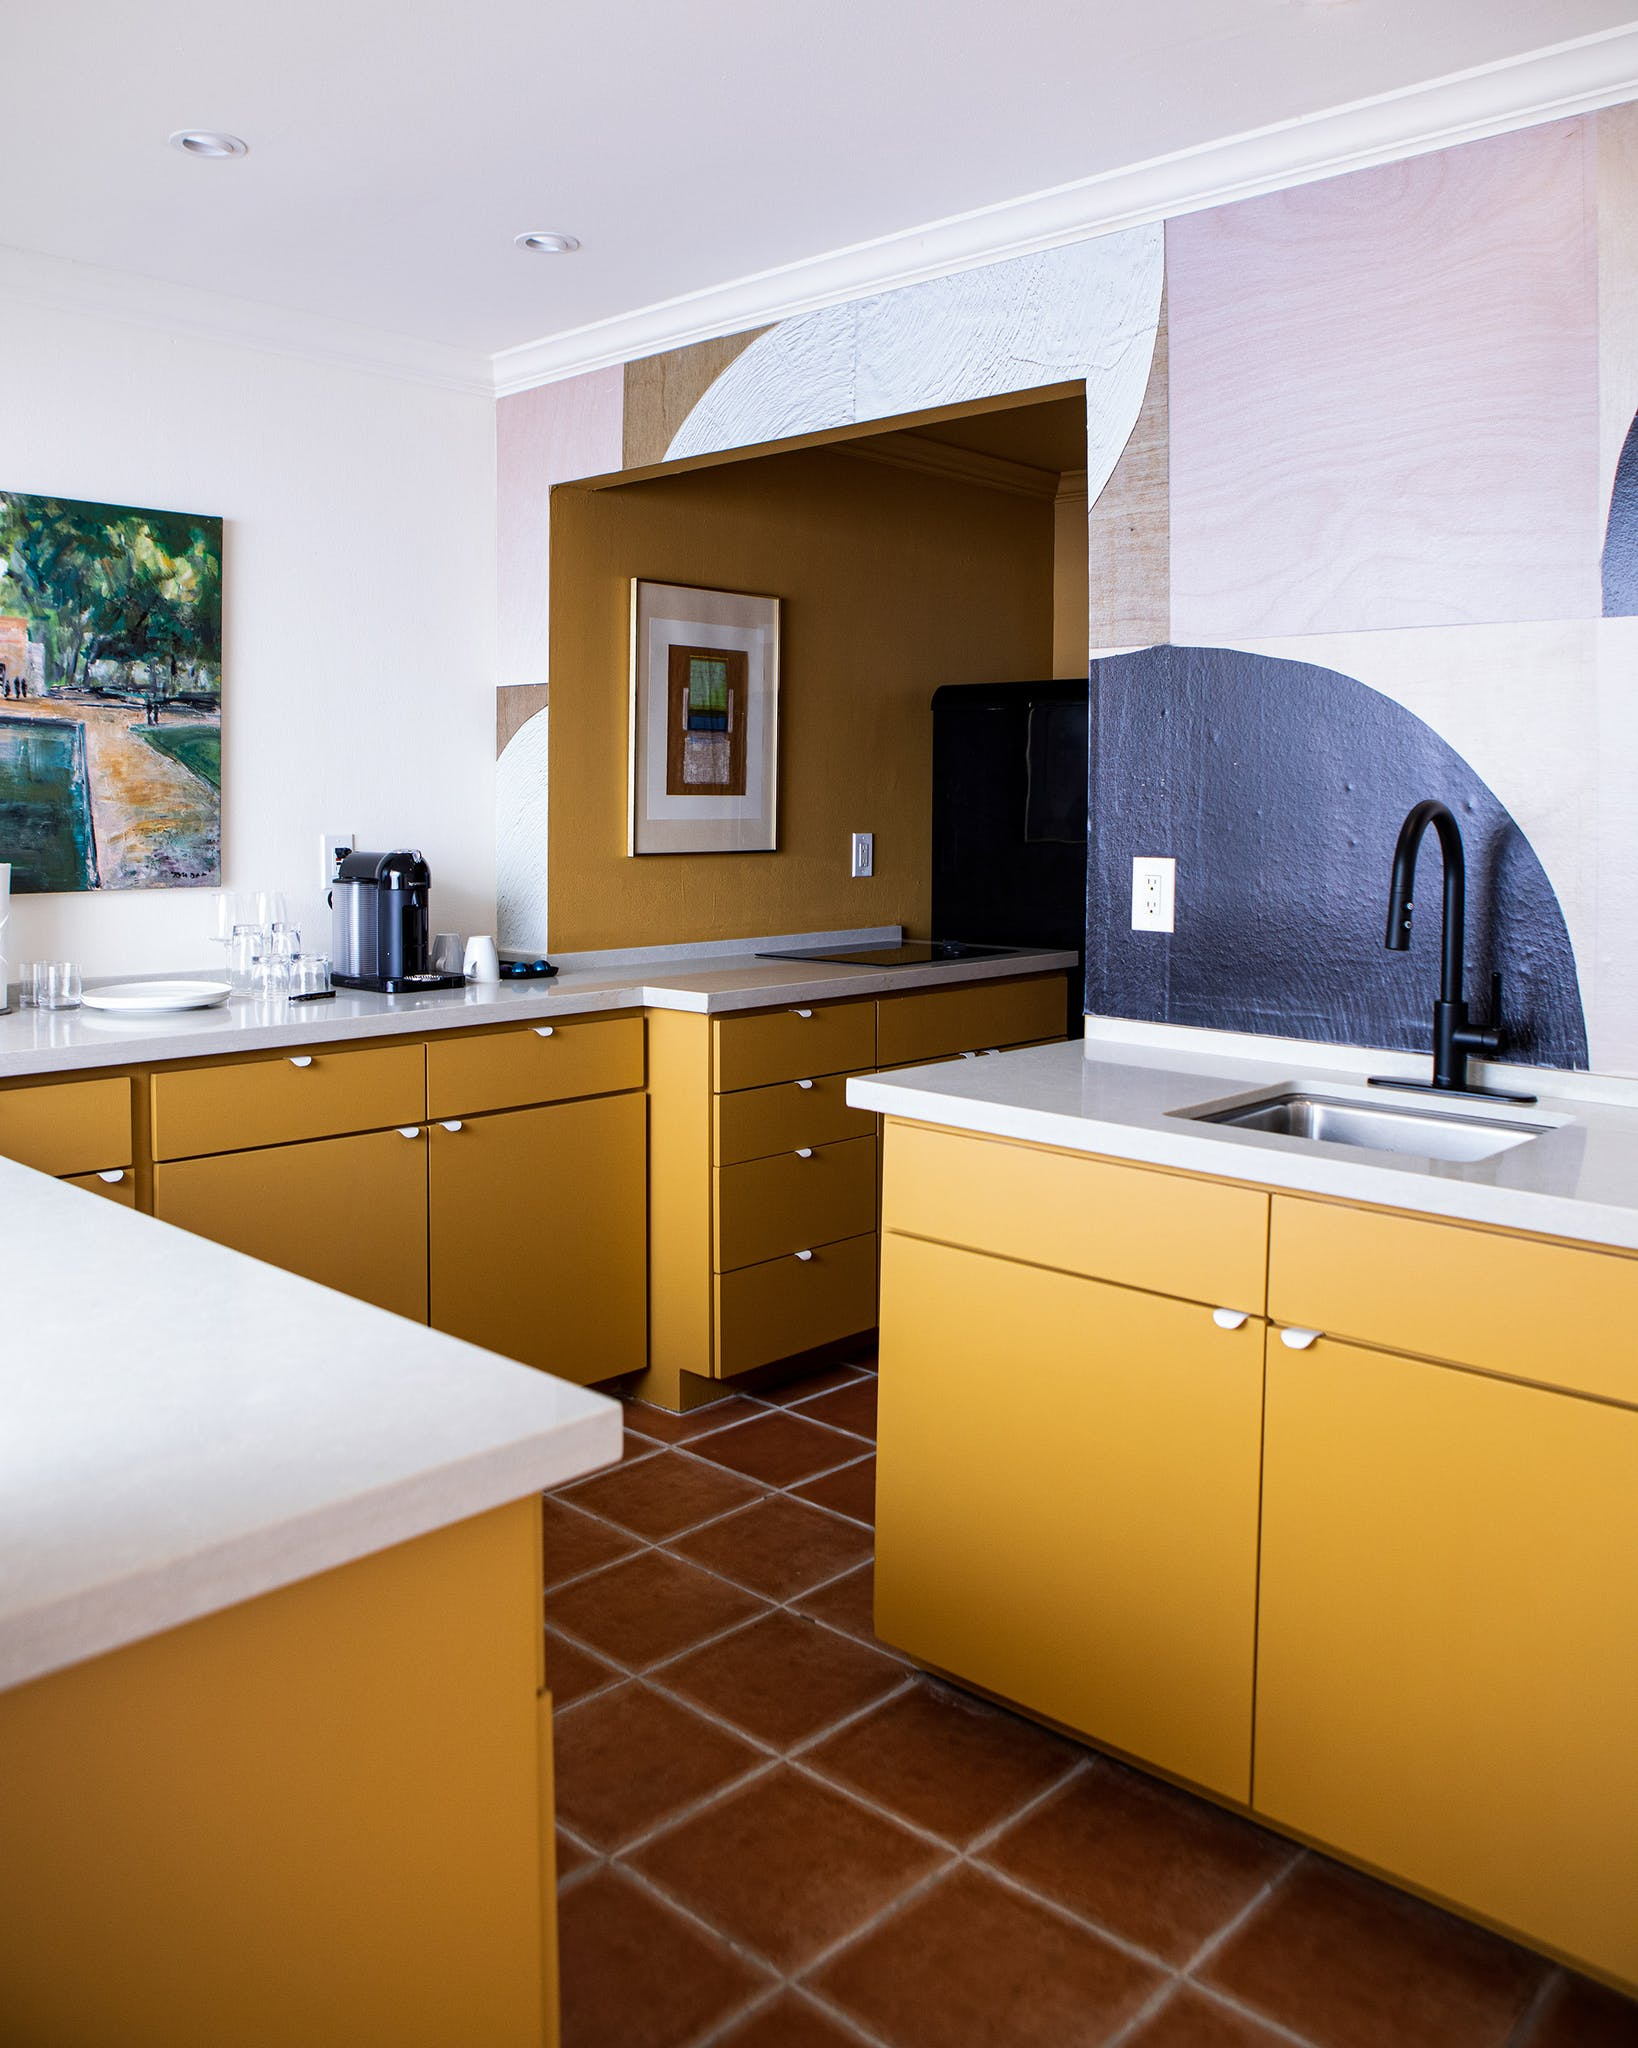 Though equipped with modern appliances, the retro kitchens have a midcentury modern vibe.